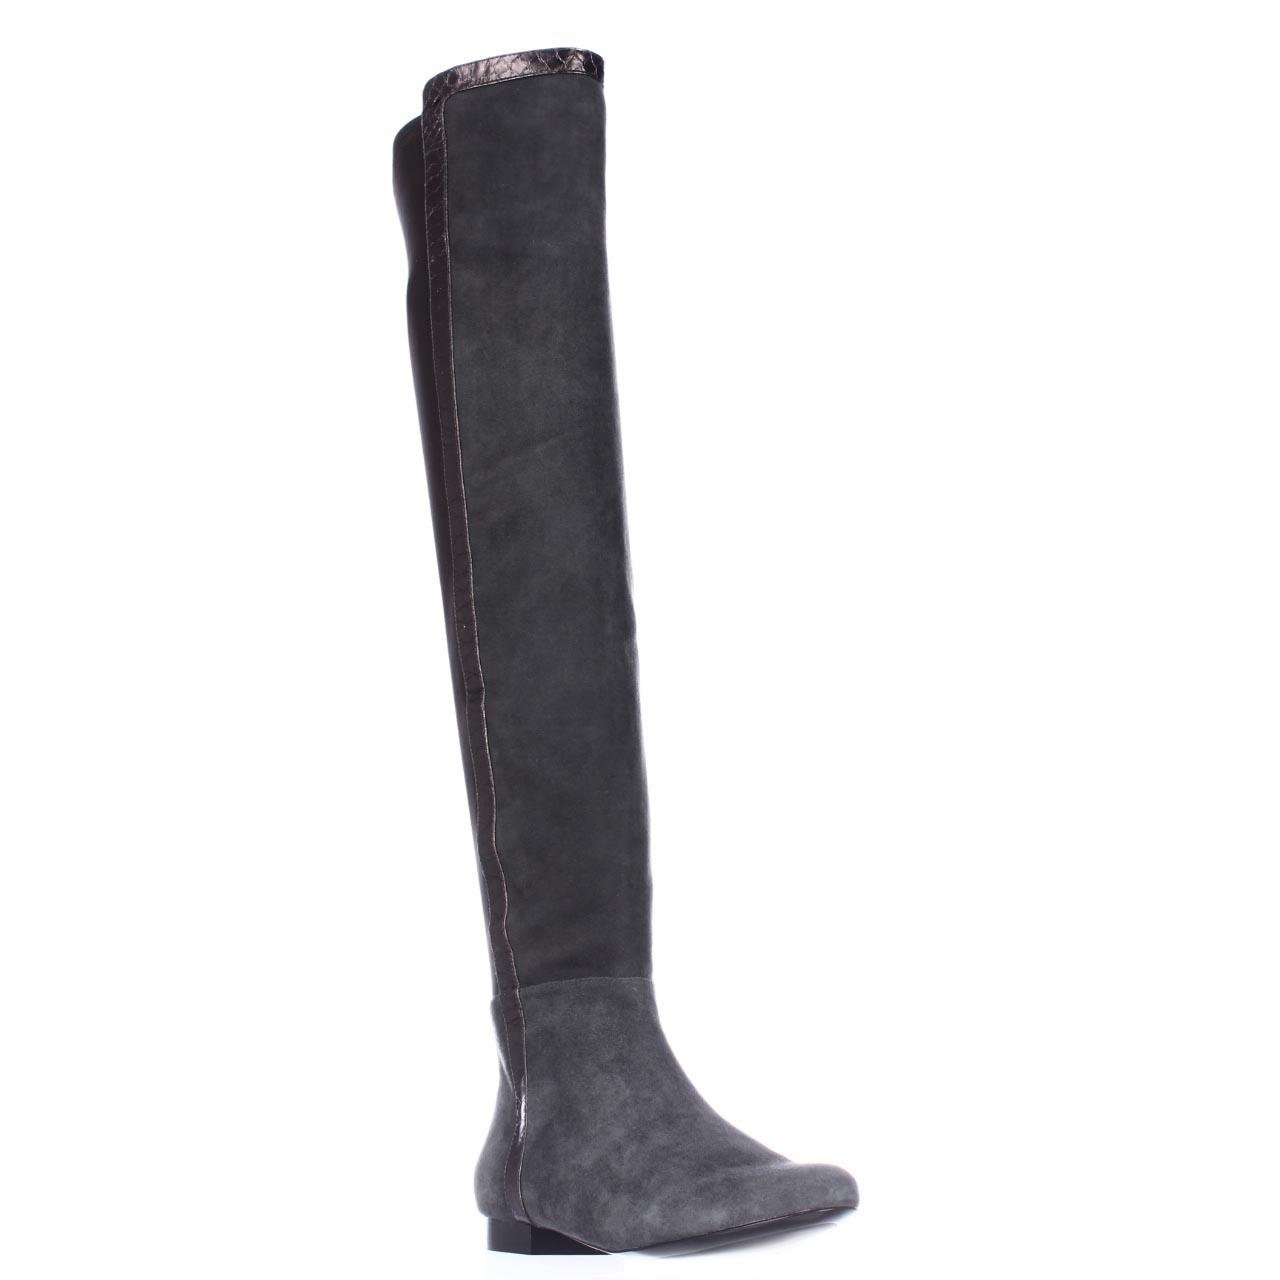 Womens Vince Camuto Filtra Over The Knee Riding Boots, Gray